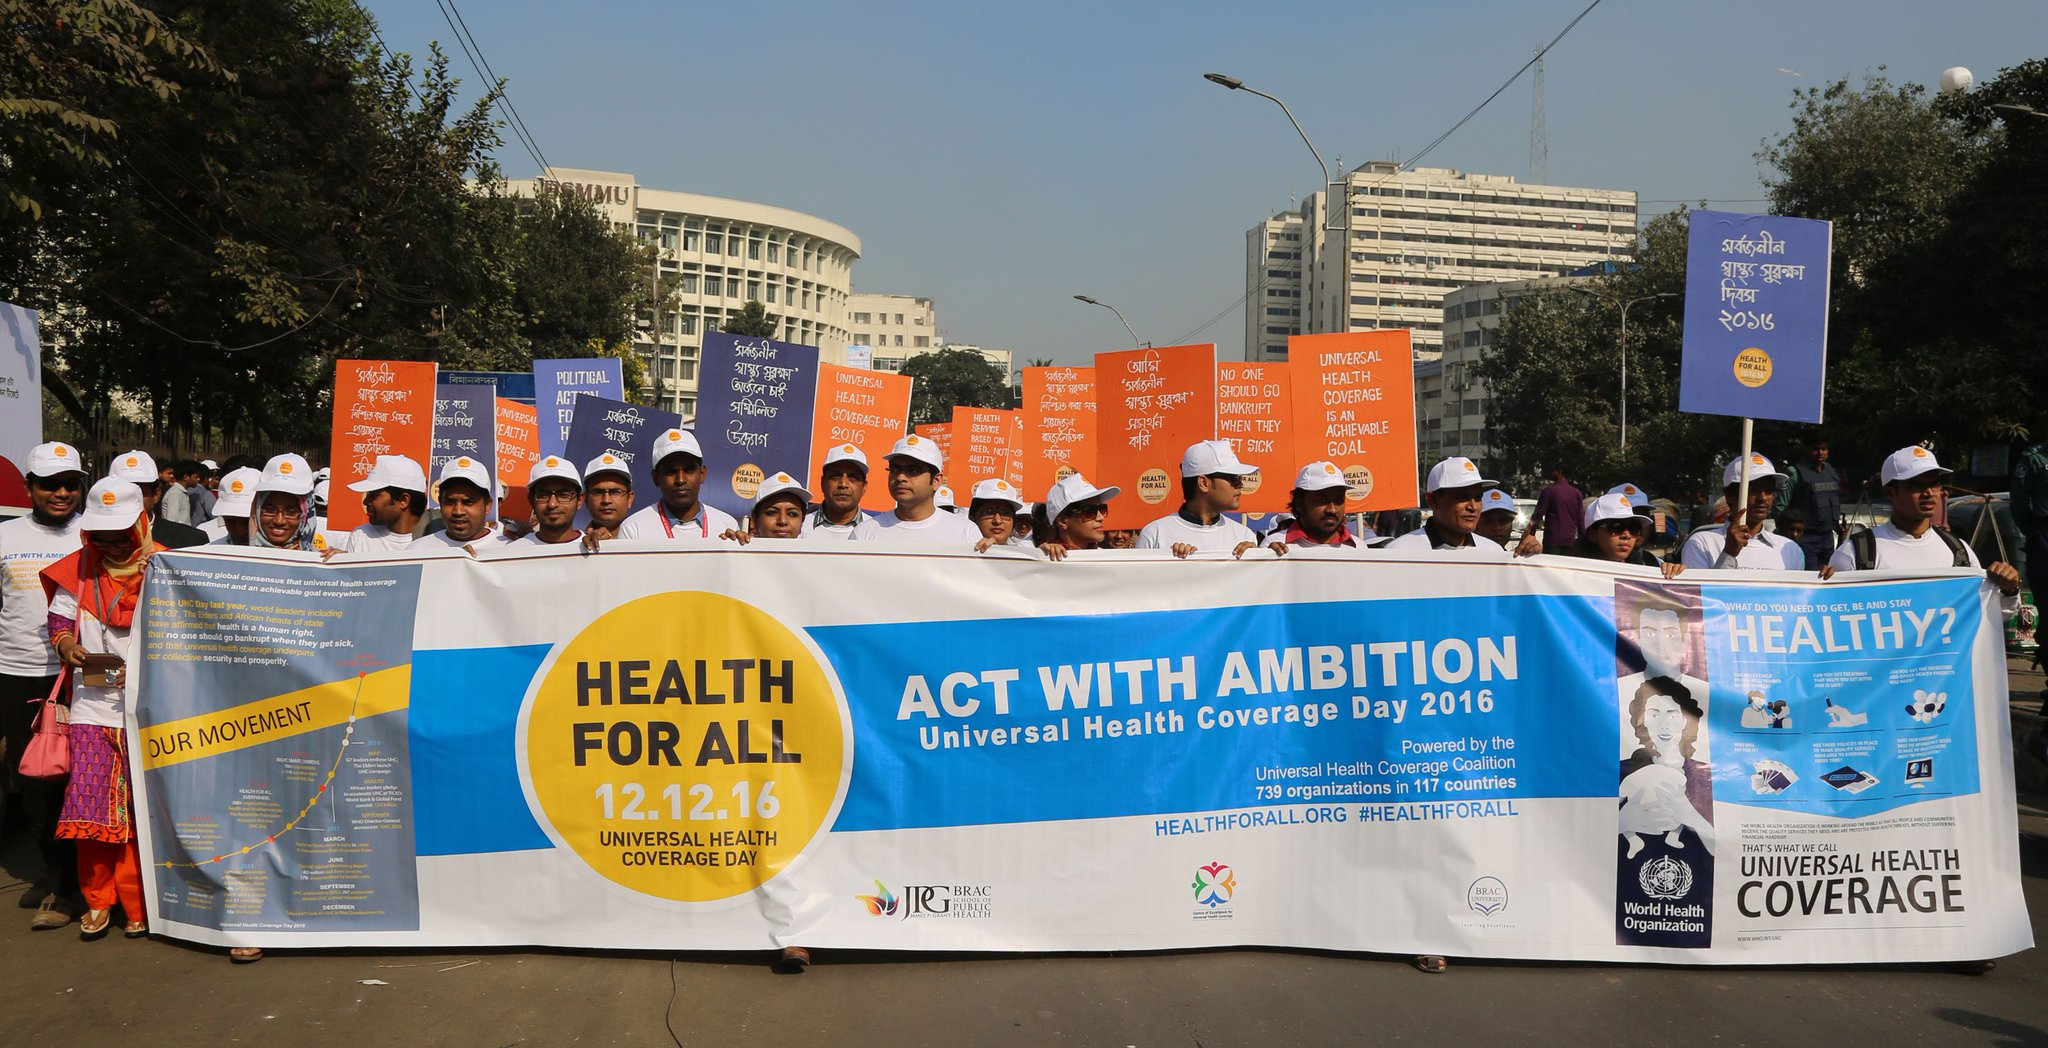 An amazing response with over 150 people marching in #Dhaka #Bangladesh for #UHCDay! #ActWithAmbition #HealthForAll #UniversalHealthCoverage https://t.co/eZbodsUJOU